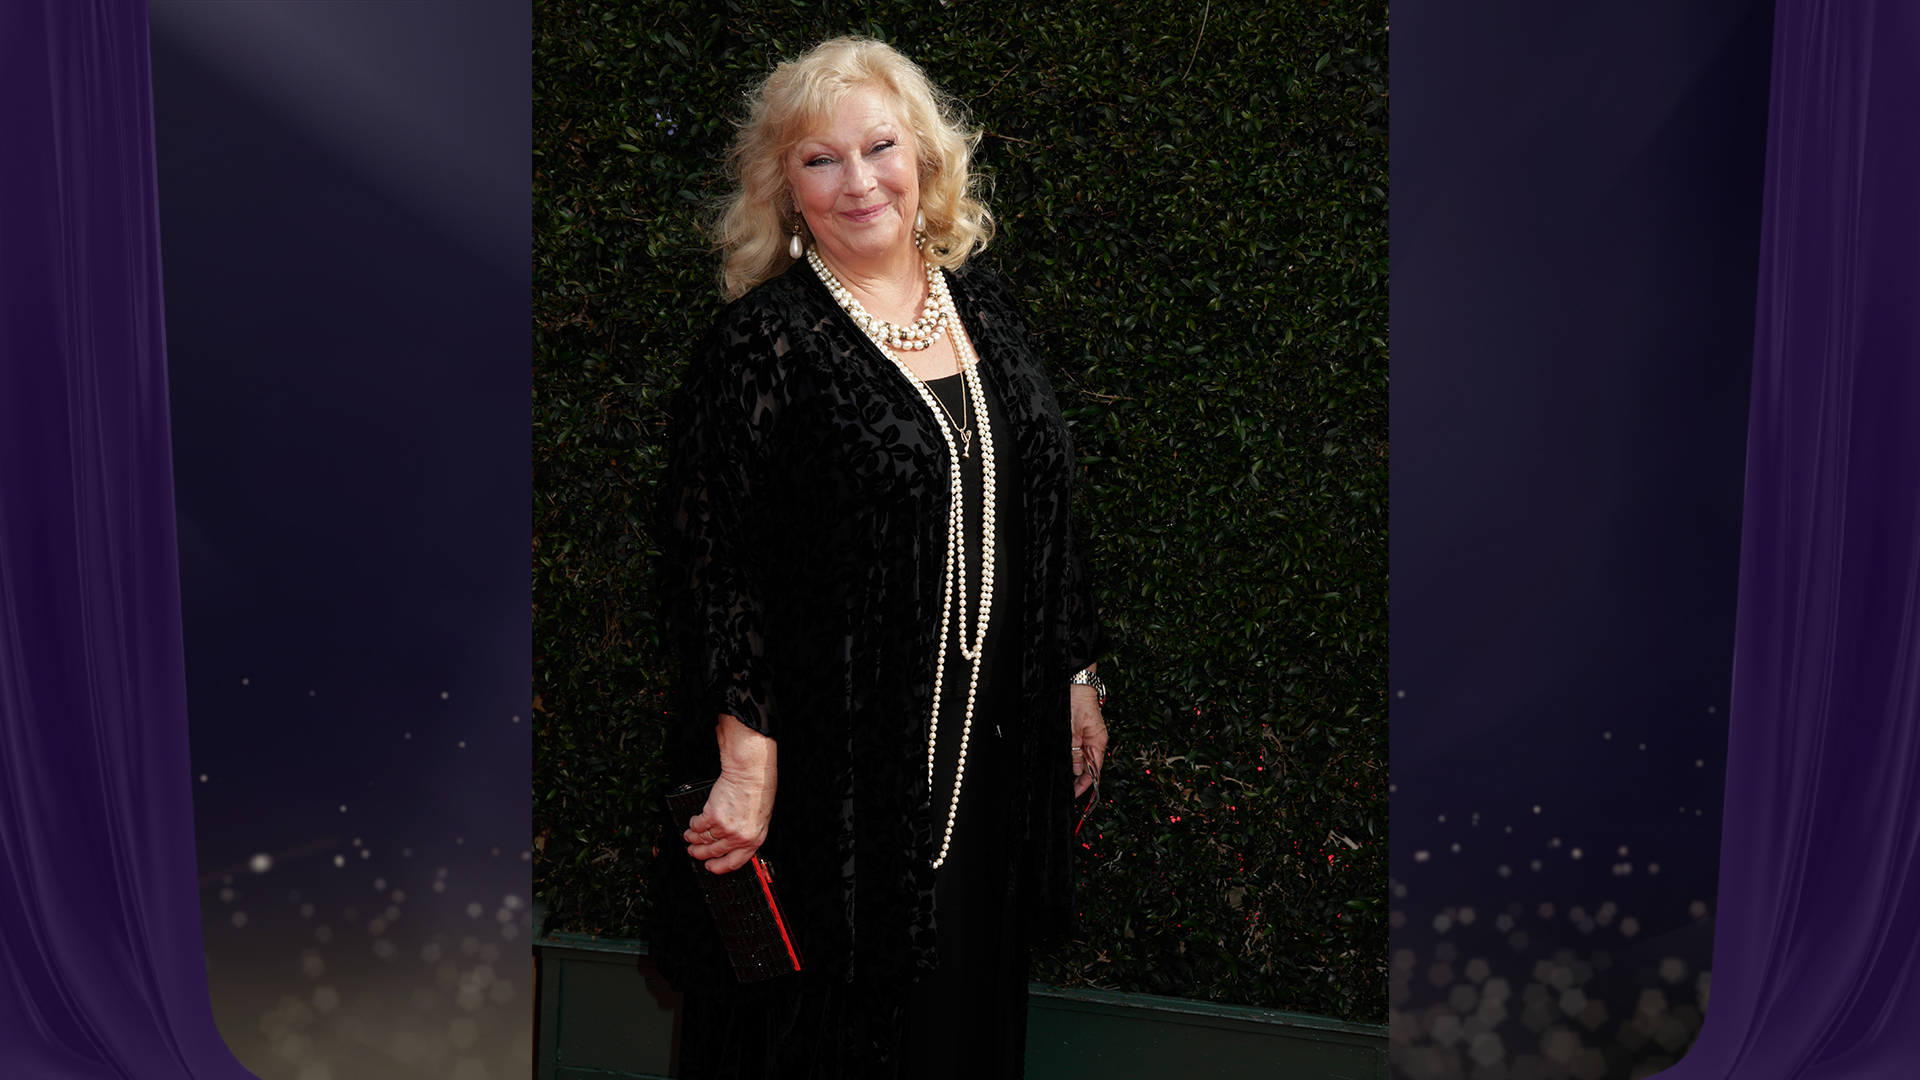 Beth Maitland from The Young and the Restless accentuates her black dress with strings and strings of pearls.